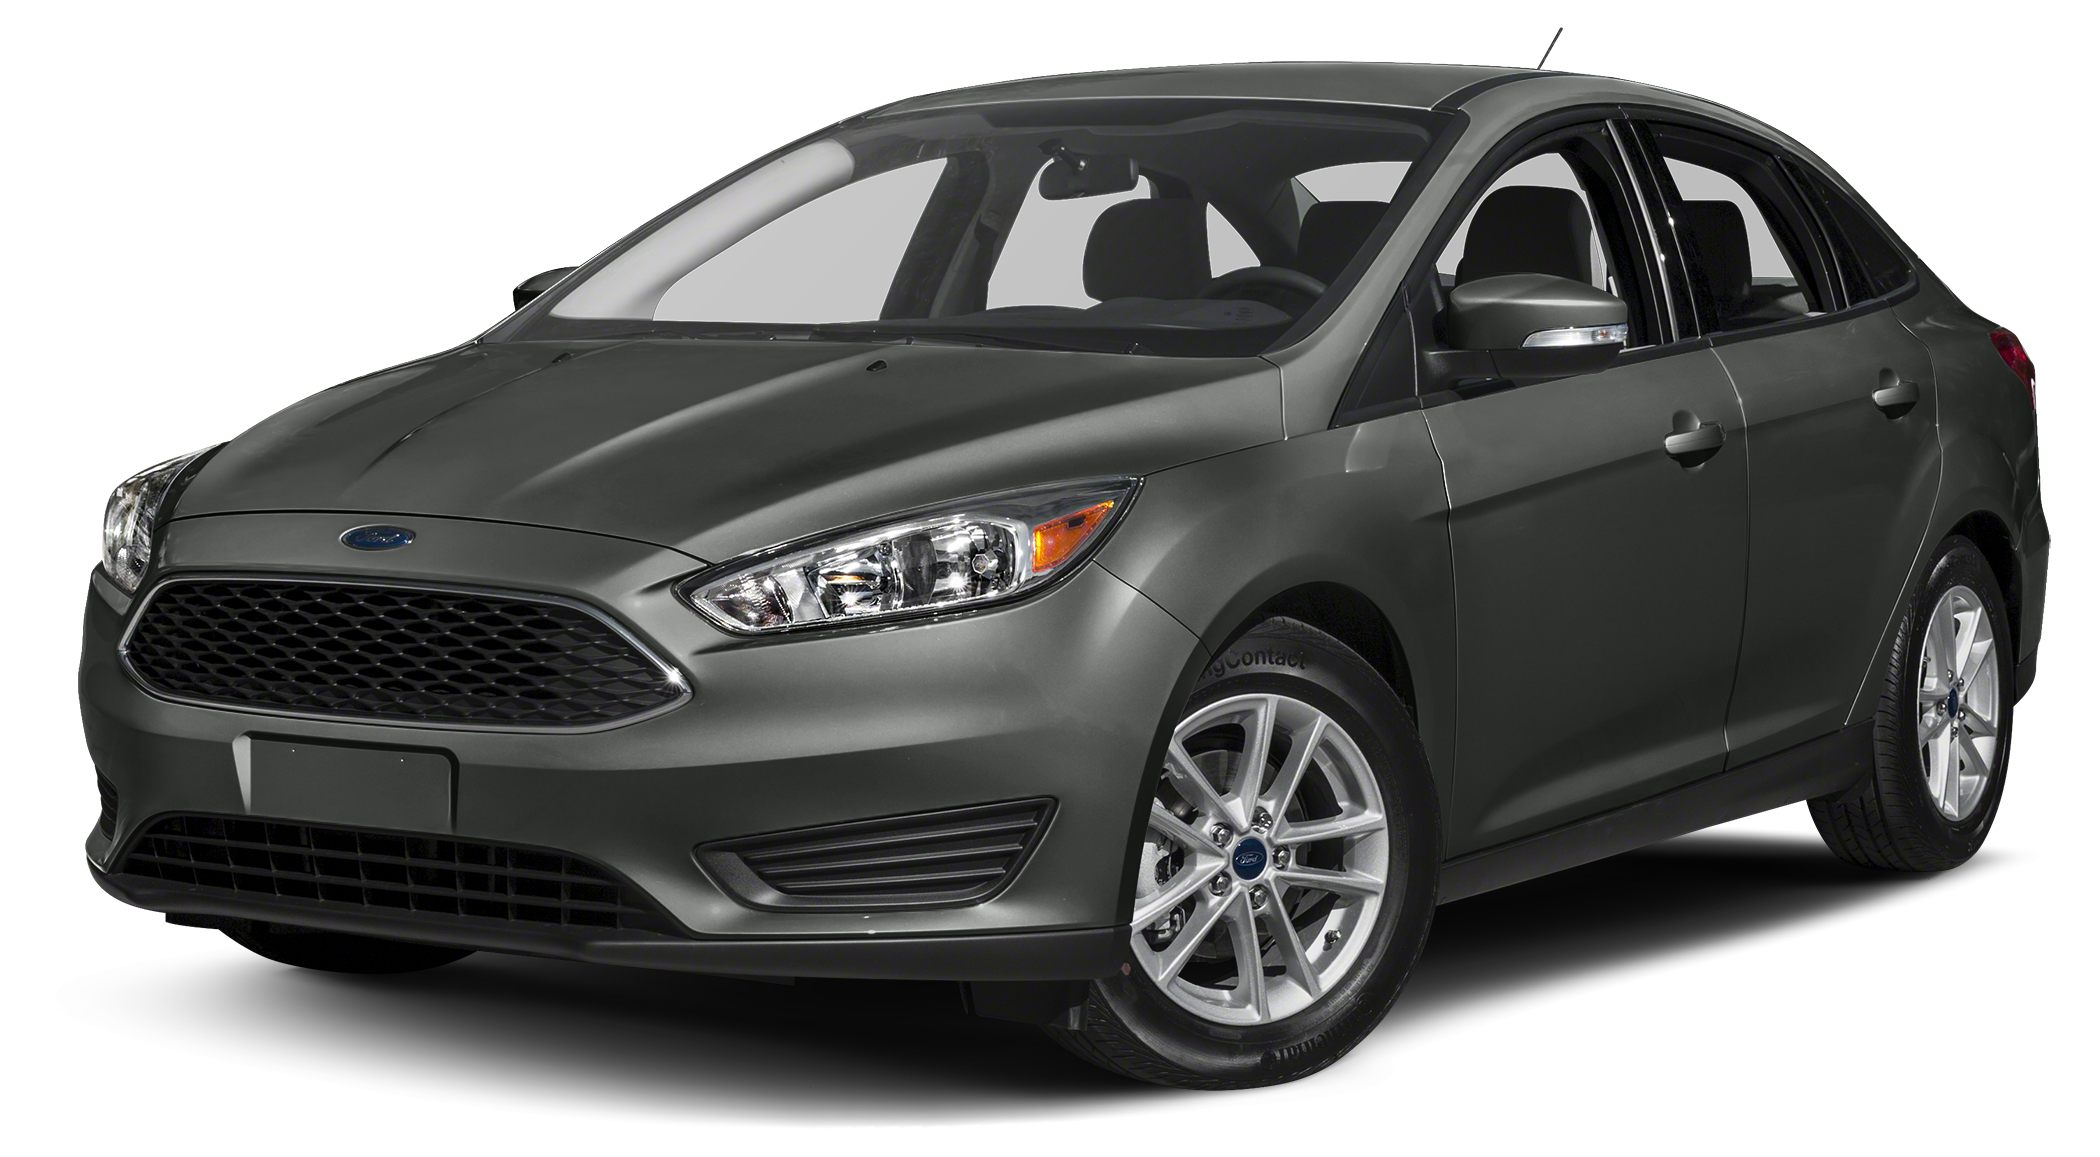 2017 Ford Focus SE This 2017 Ford Focus 4dr SE Sedan features a 20L 4 CYLINDER 4cyl Gasoline engi